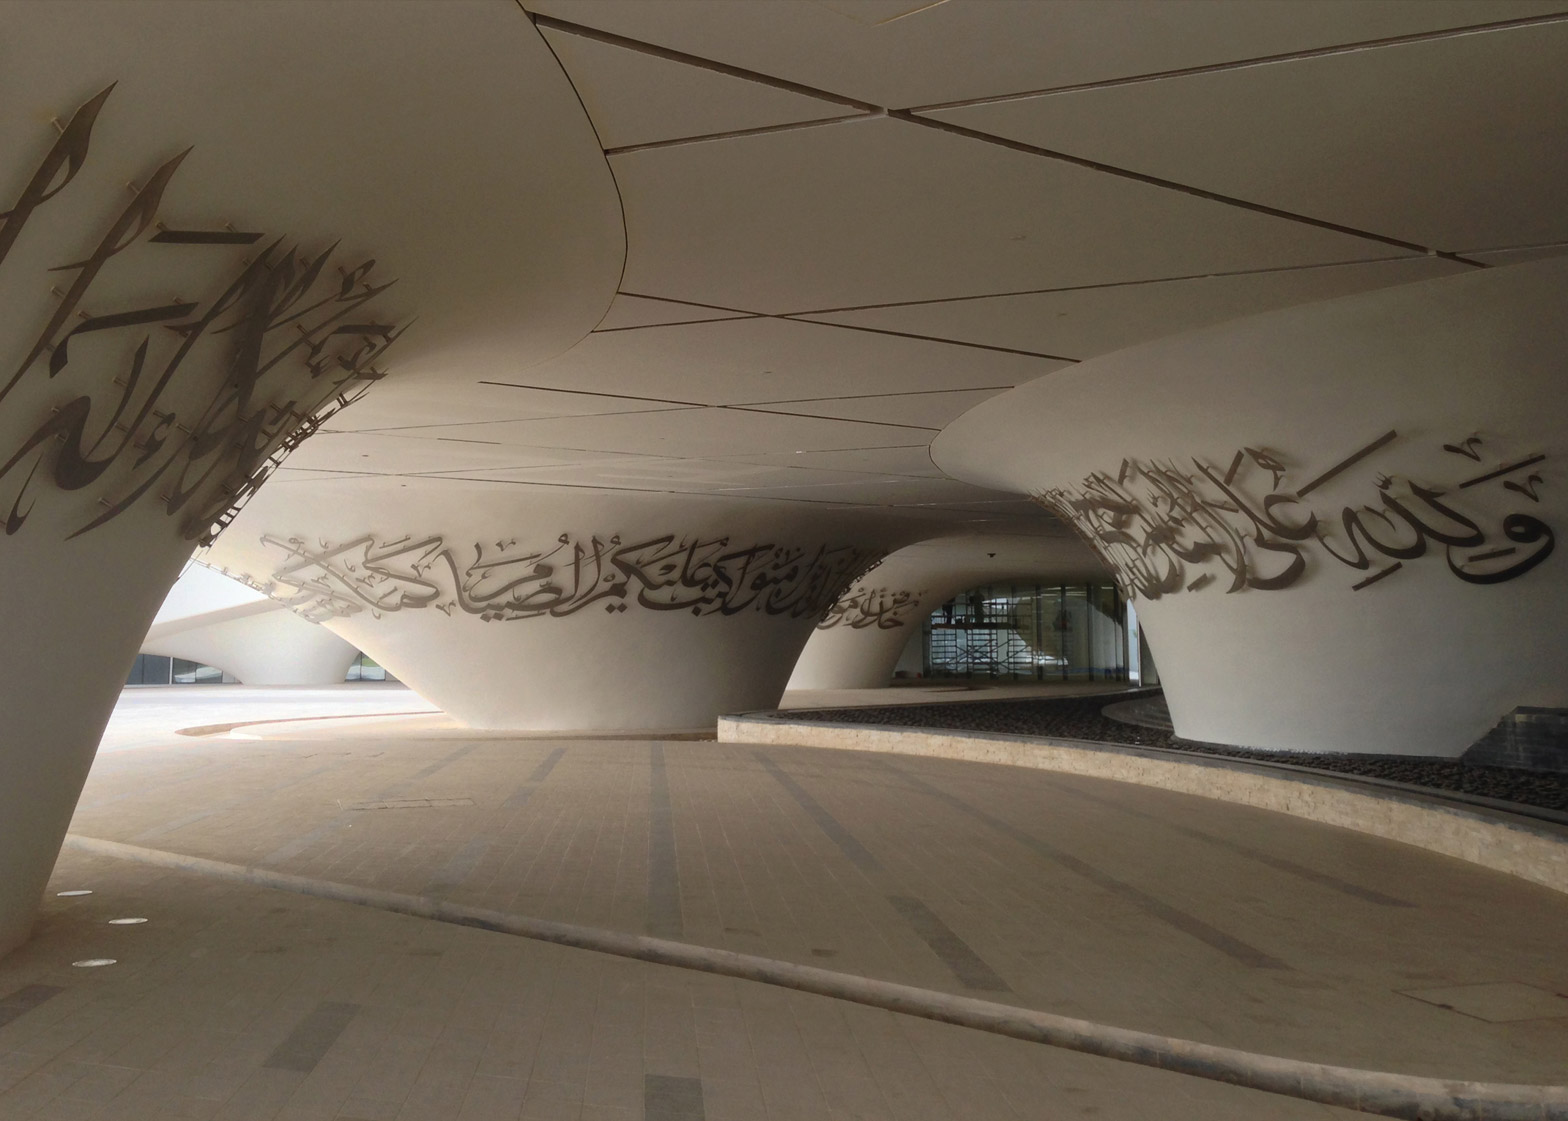 Qatar Faculty of Islamic Studies, Doha, Qatar, by Qatar Foundation